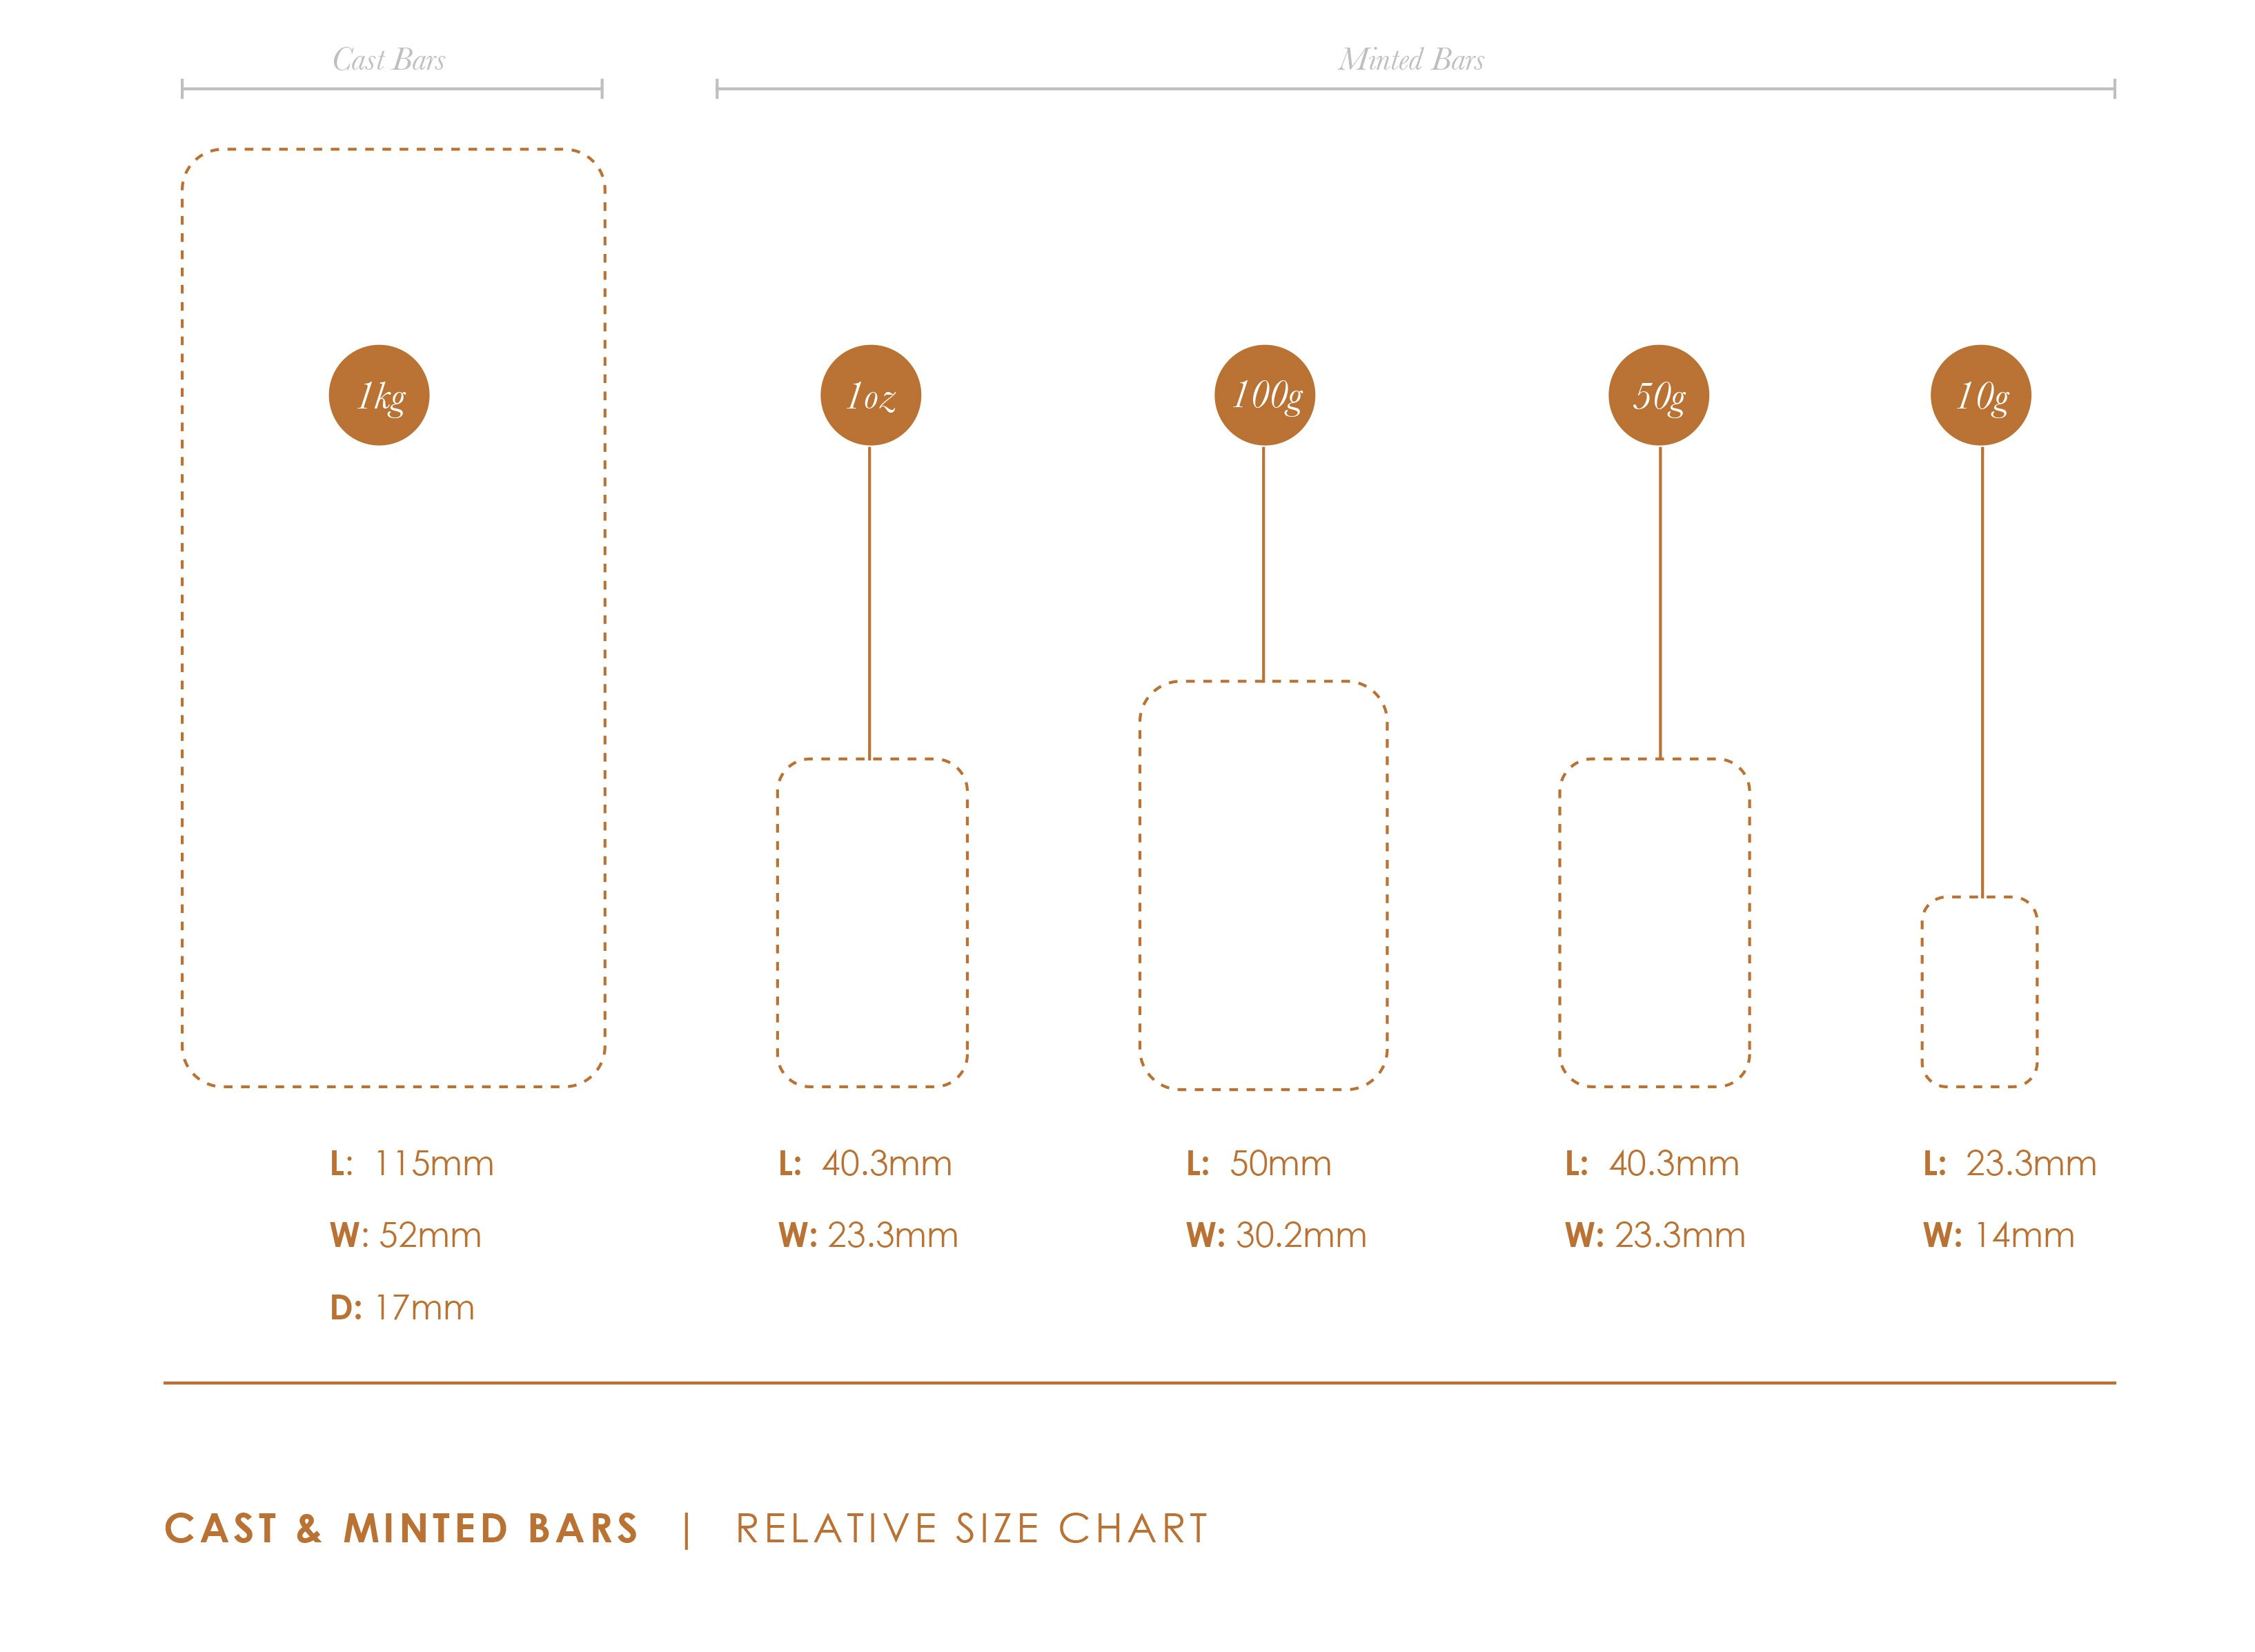 MetCon Cast & Minted Bars Size Chart